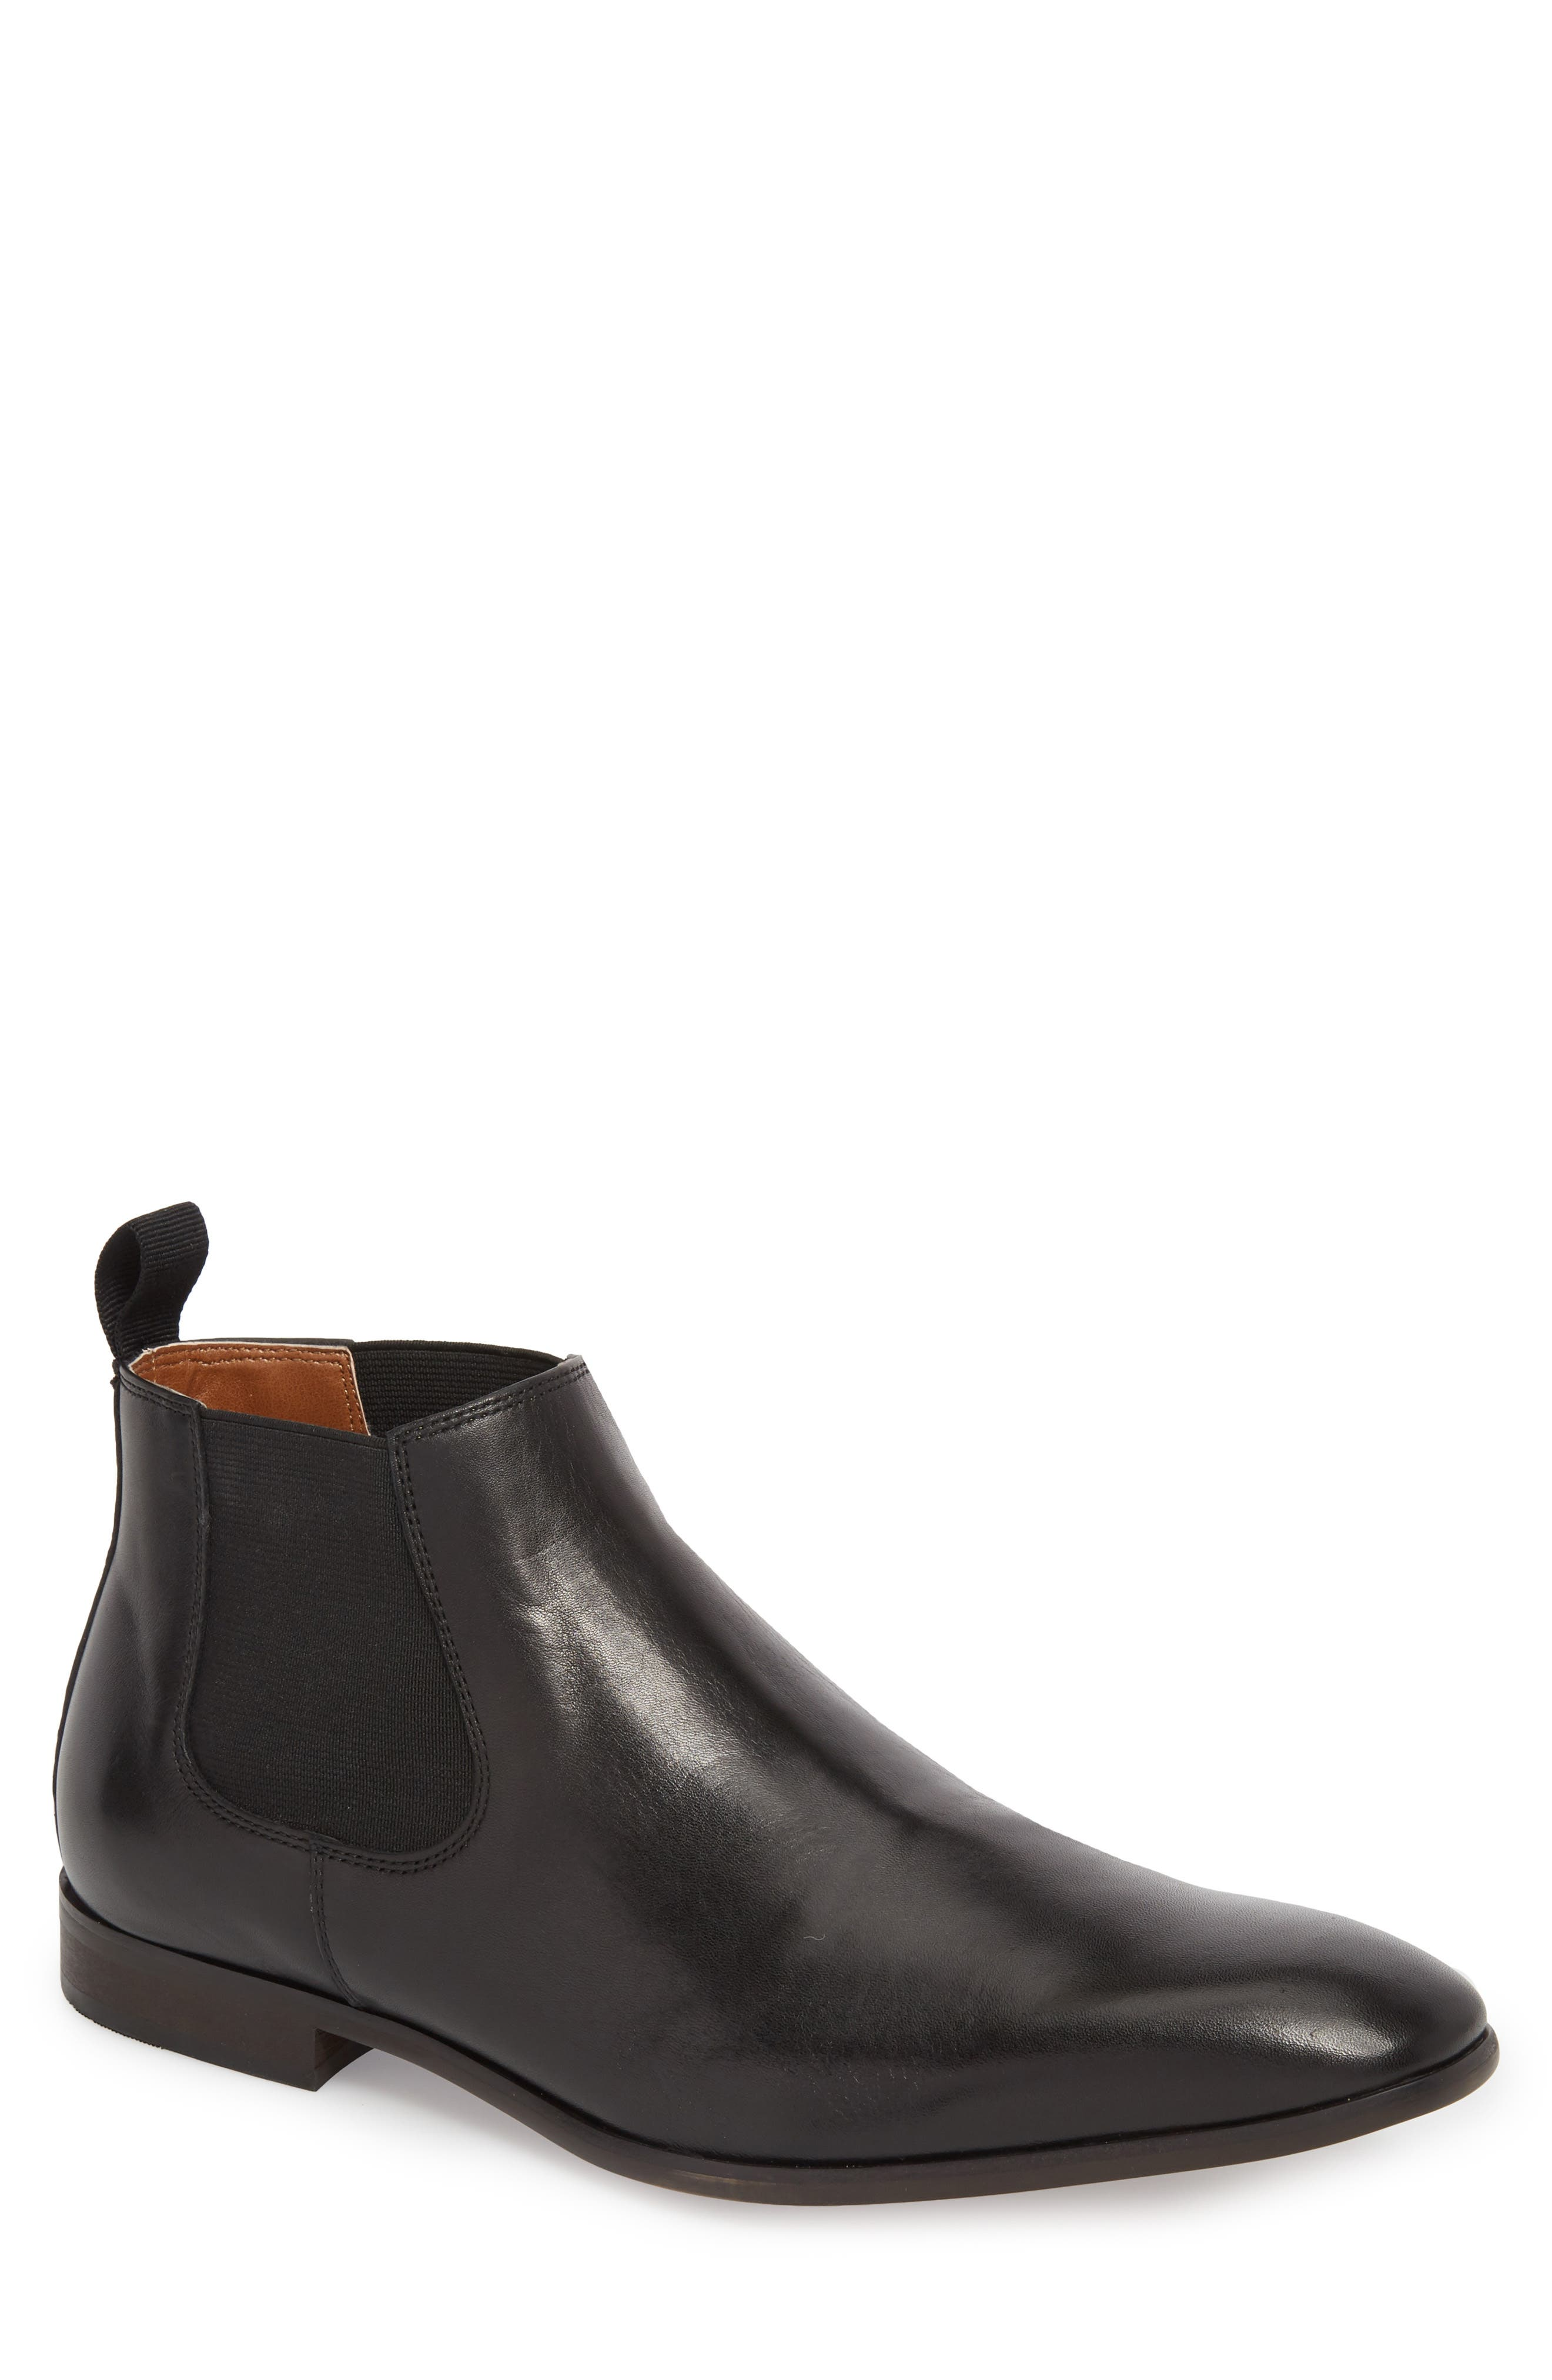 Edward Chelsea Boot,                             Main thumbnail 1, color,                             BLACK LEATHER